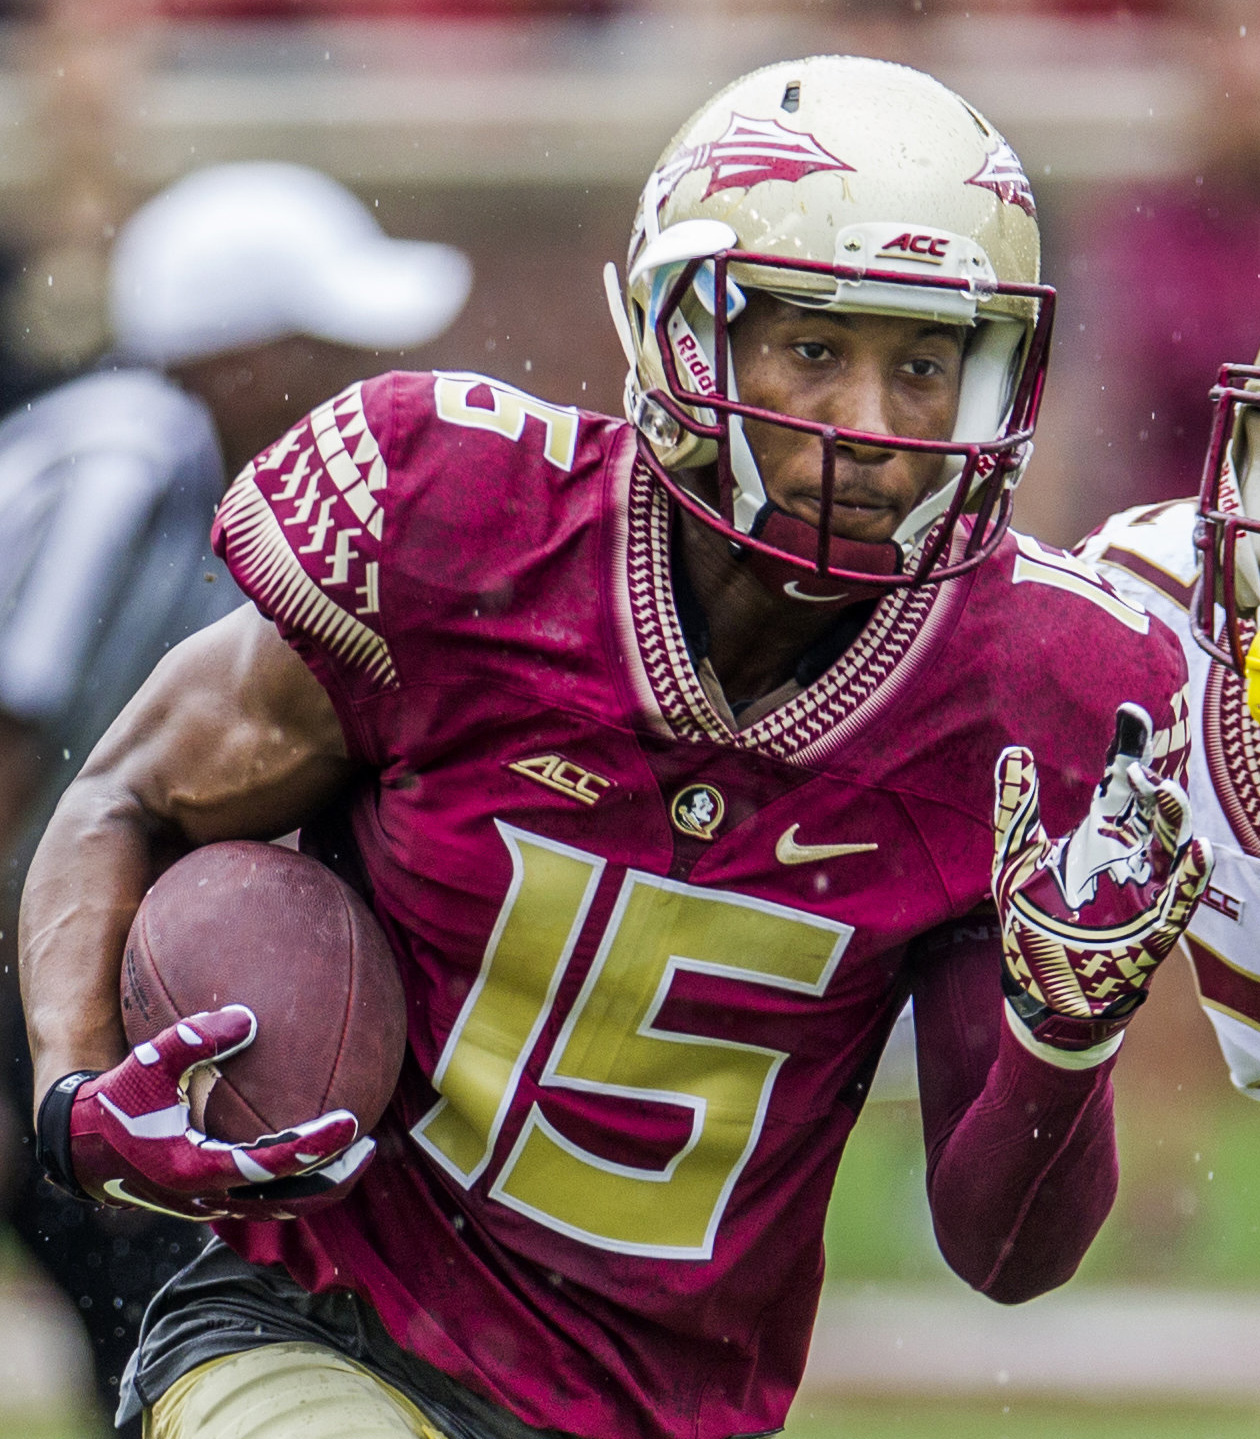 FILE - In this April 11, 2015, file photo, Florida State wide receiver Travis Rudolph run in the first half of the Florida State Garnet & Gold spring college football game in Tallahassee, Fla. A small gesture of kindness by Florida State University wide r